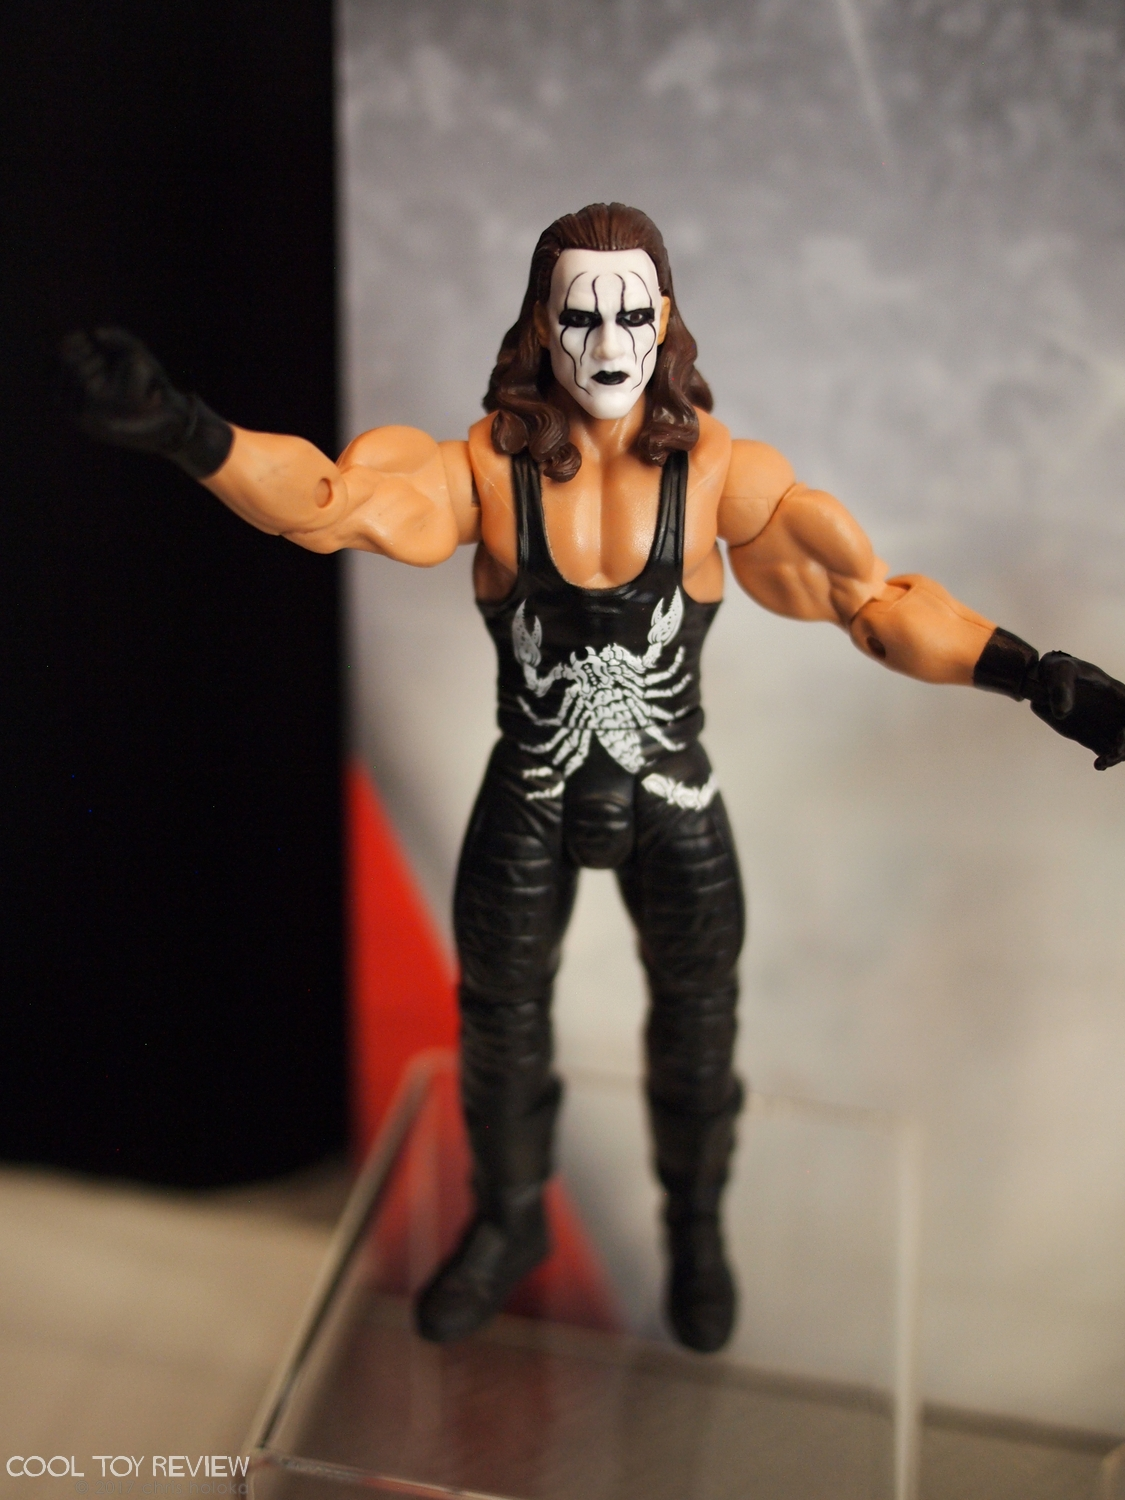 Cool toy review photo archive for Cool wwe pictures